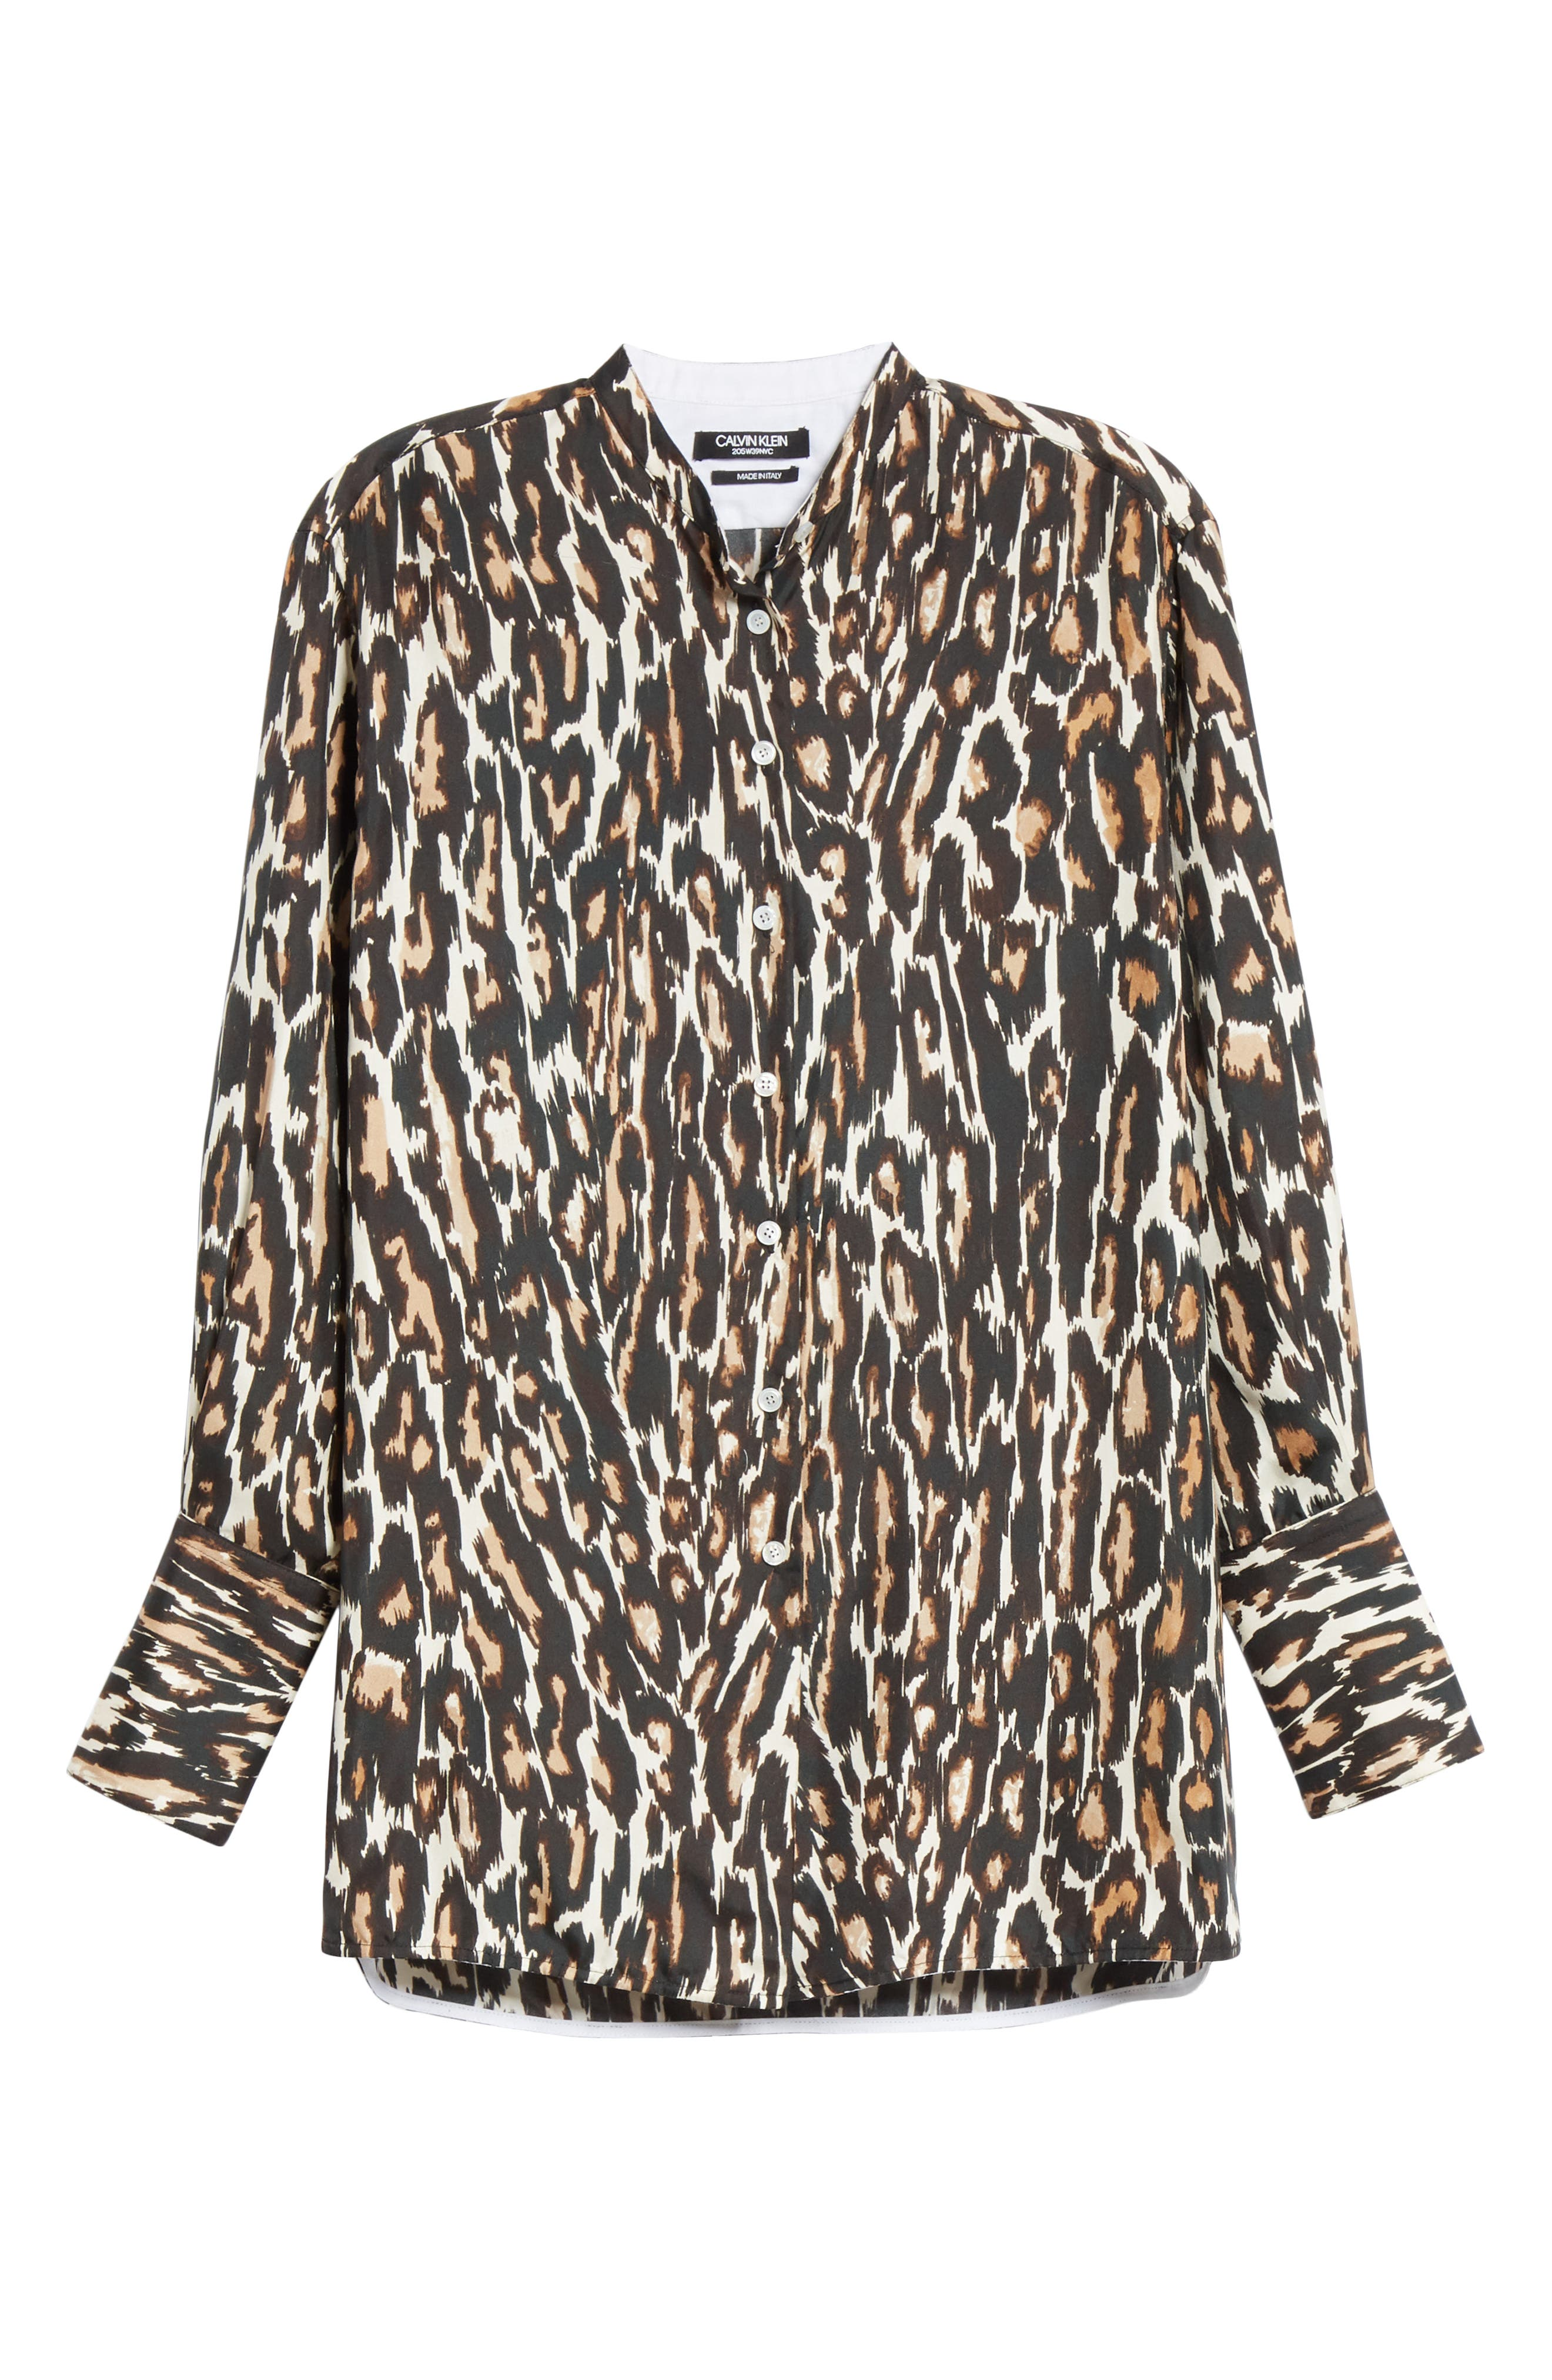 Leopard Print Silk Twill Blouse,                             Alternate thumbnail 7, color,                             IVORY BROWN BLACK BEIGE